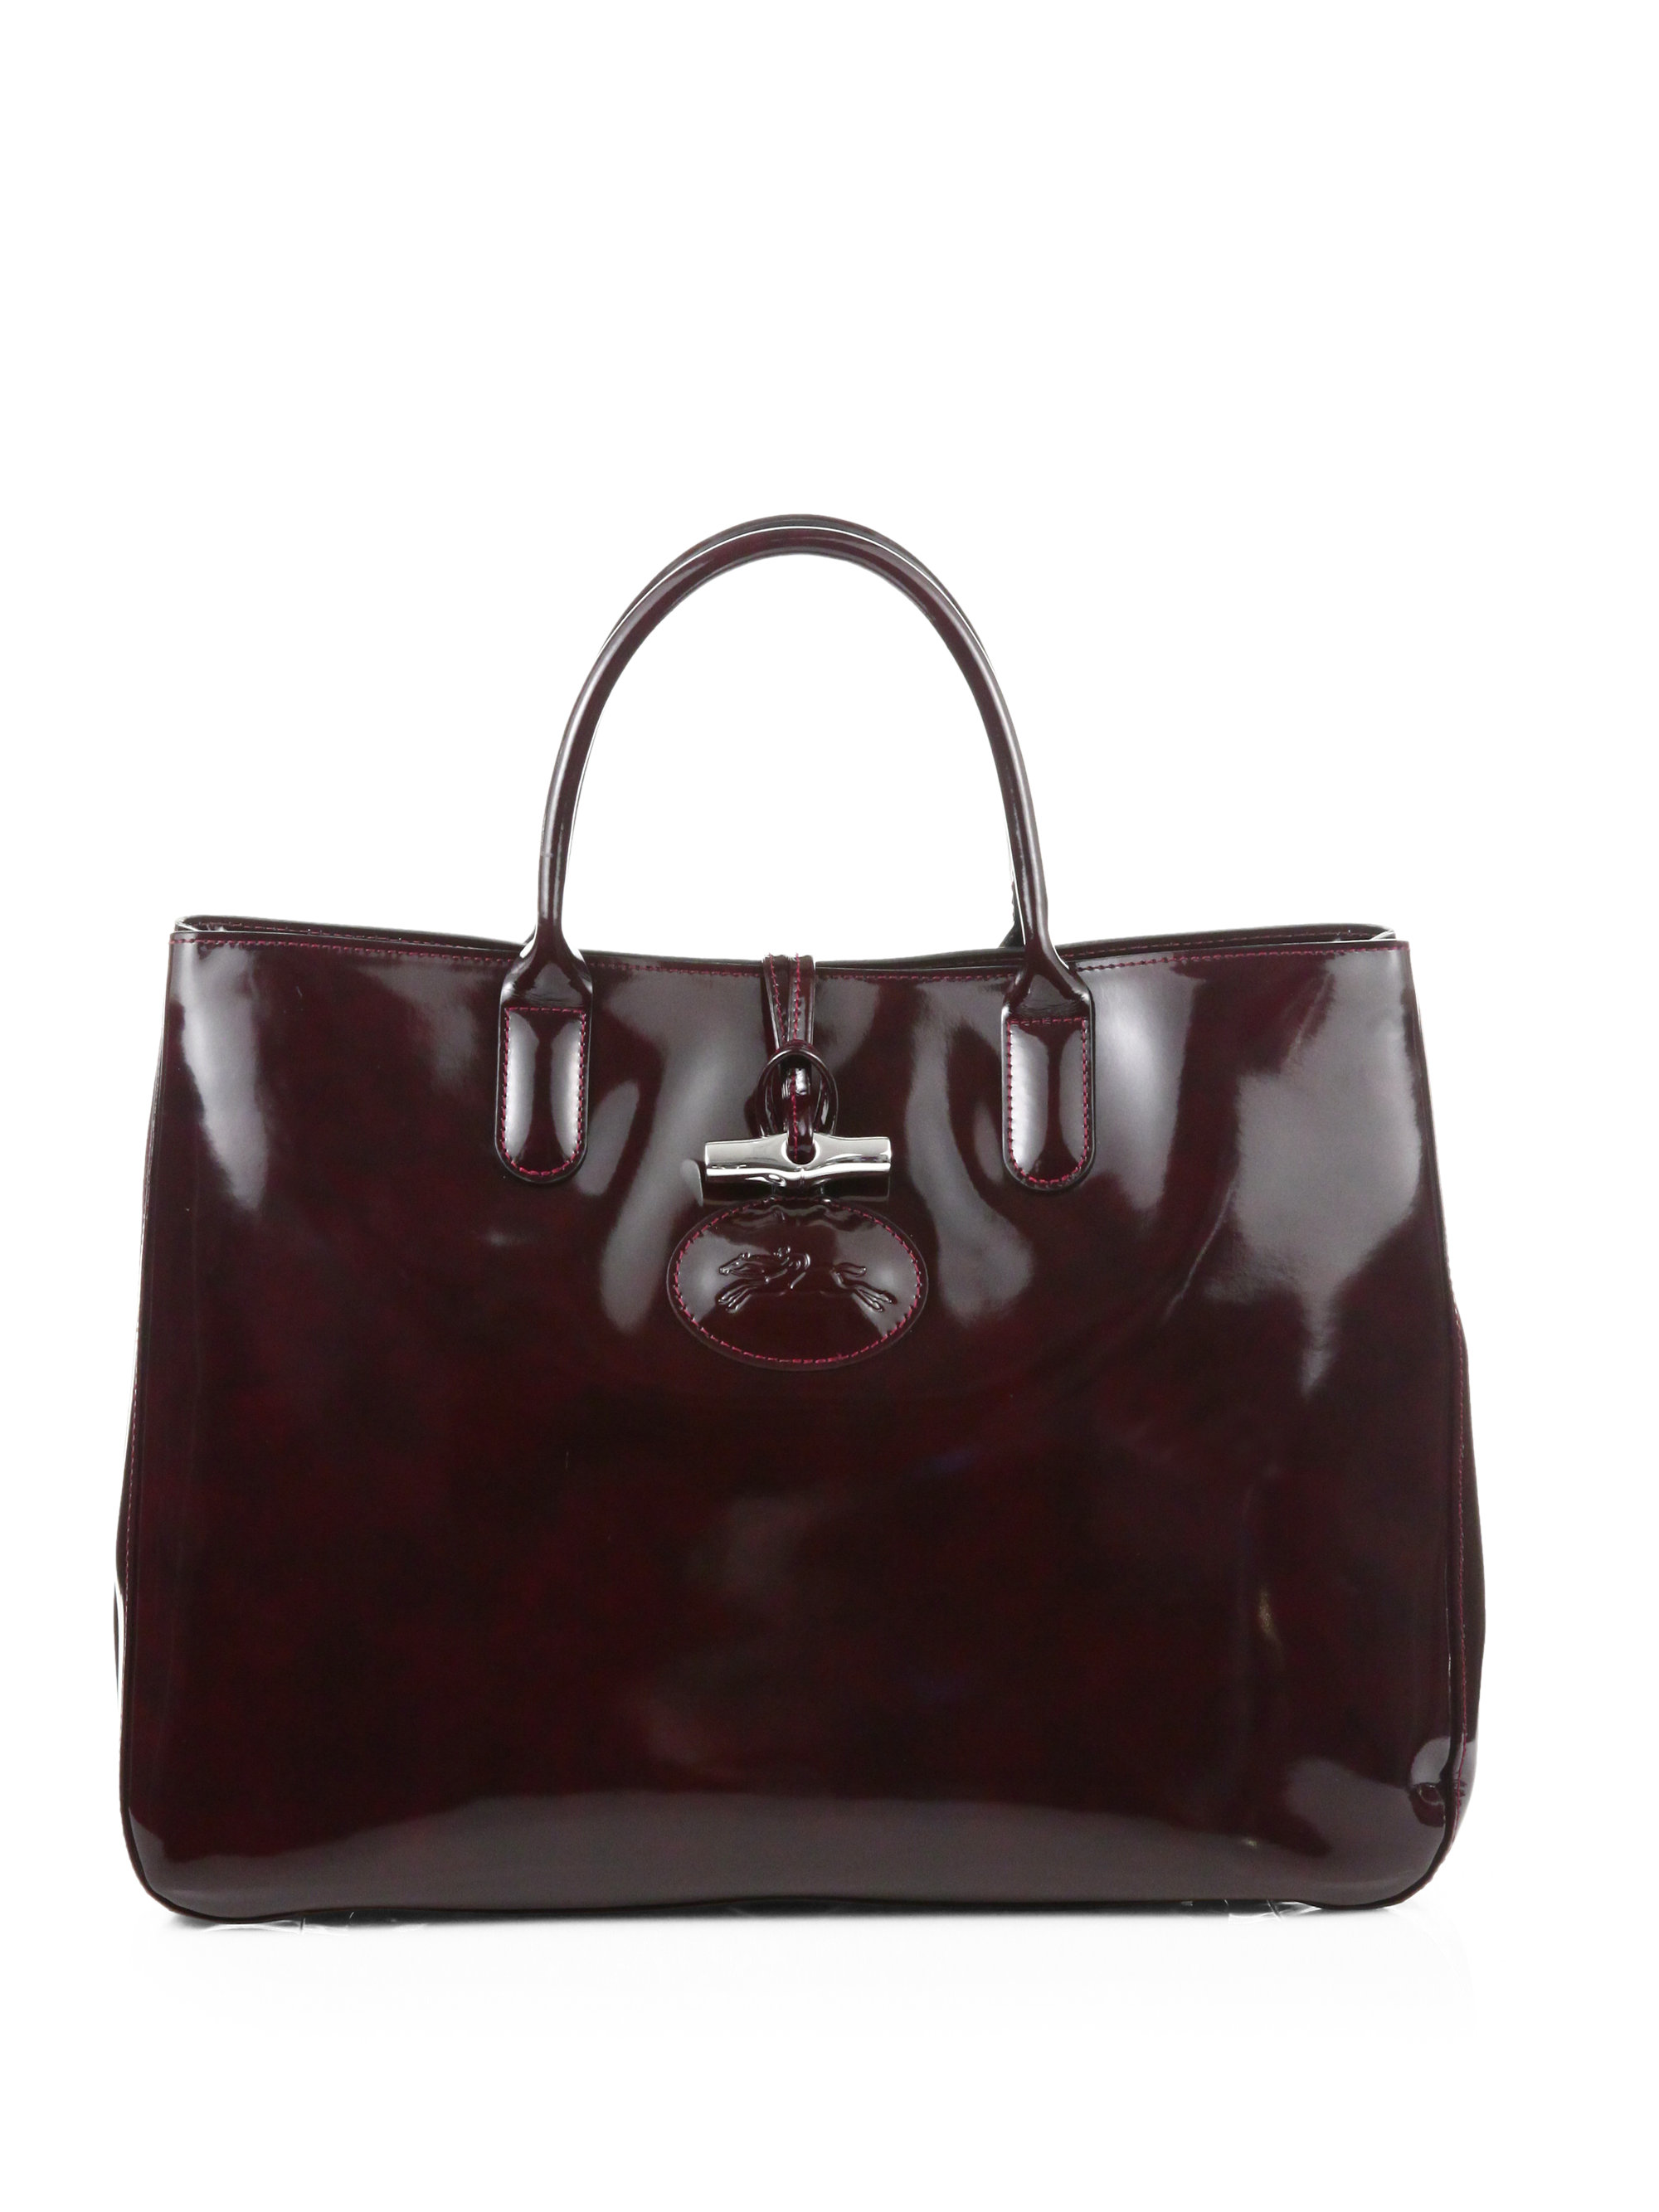 Lyst - Longchamp Roseau Heritage Large Box Tote in Brown f94f507df9a13